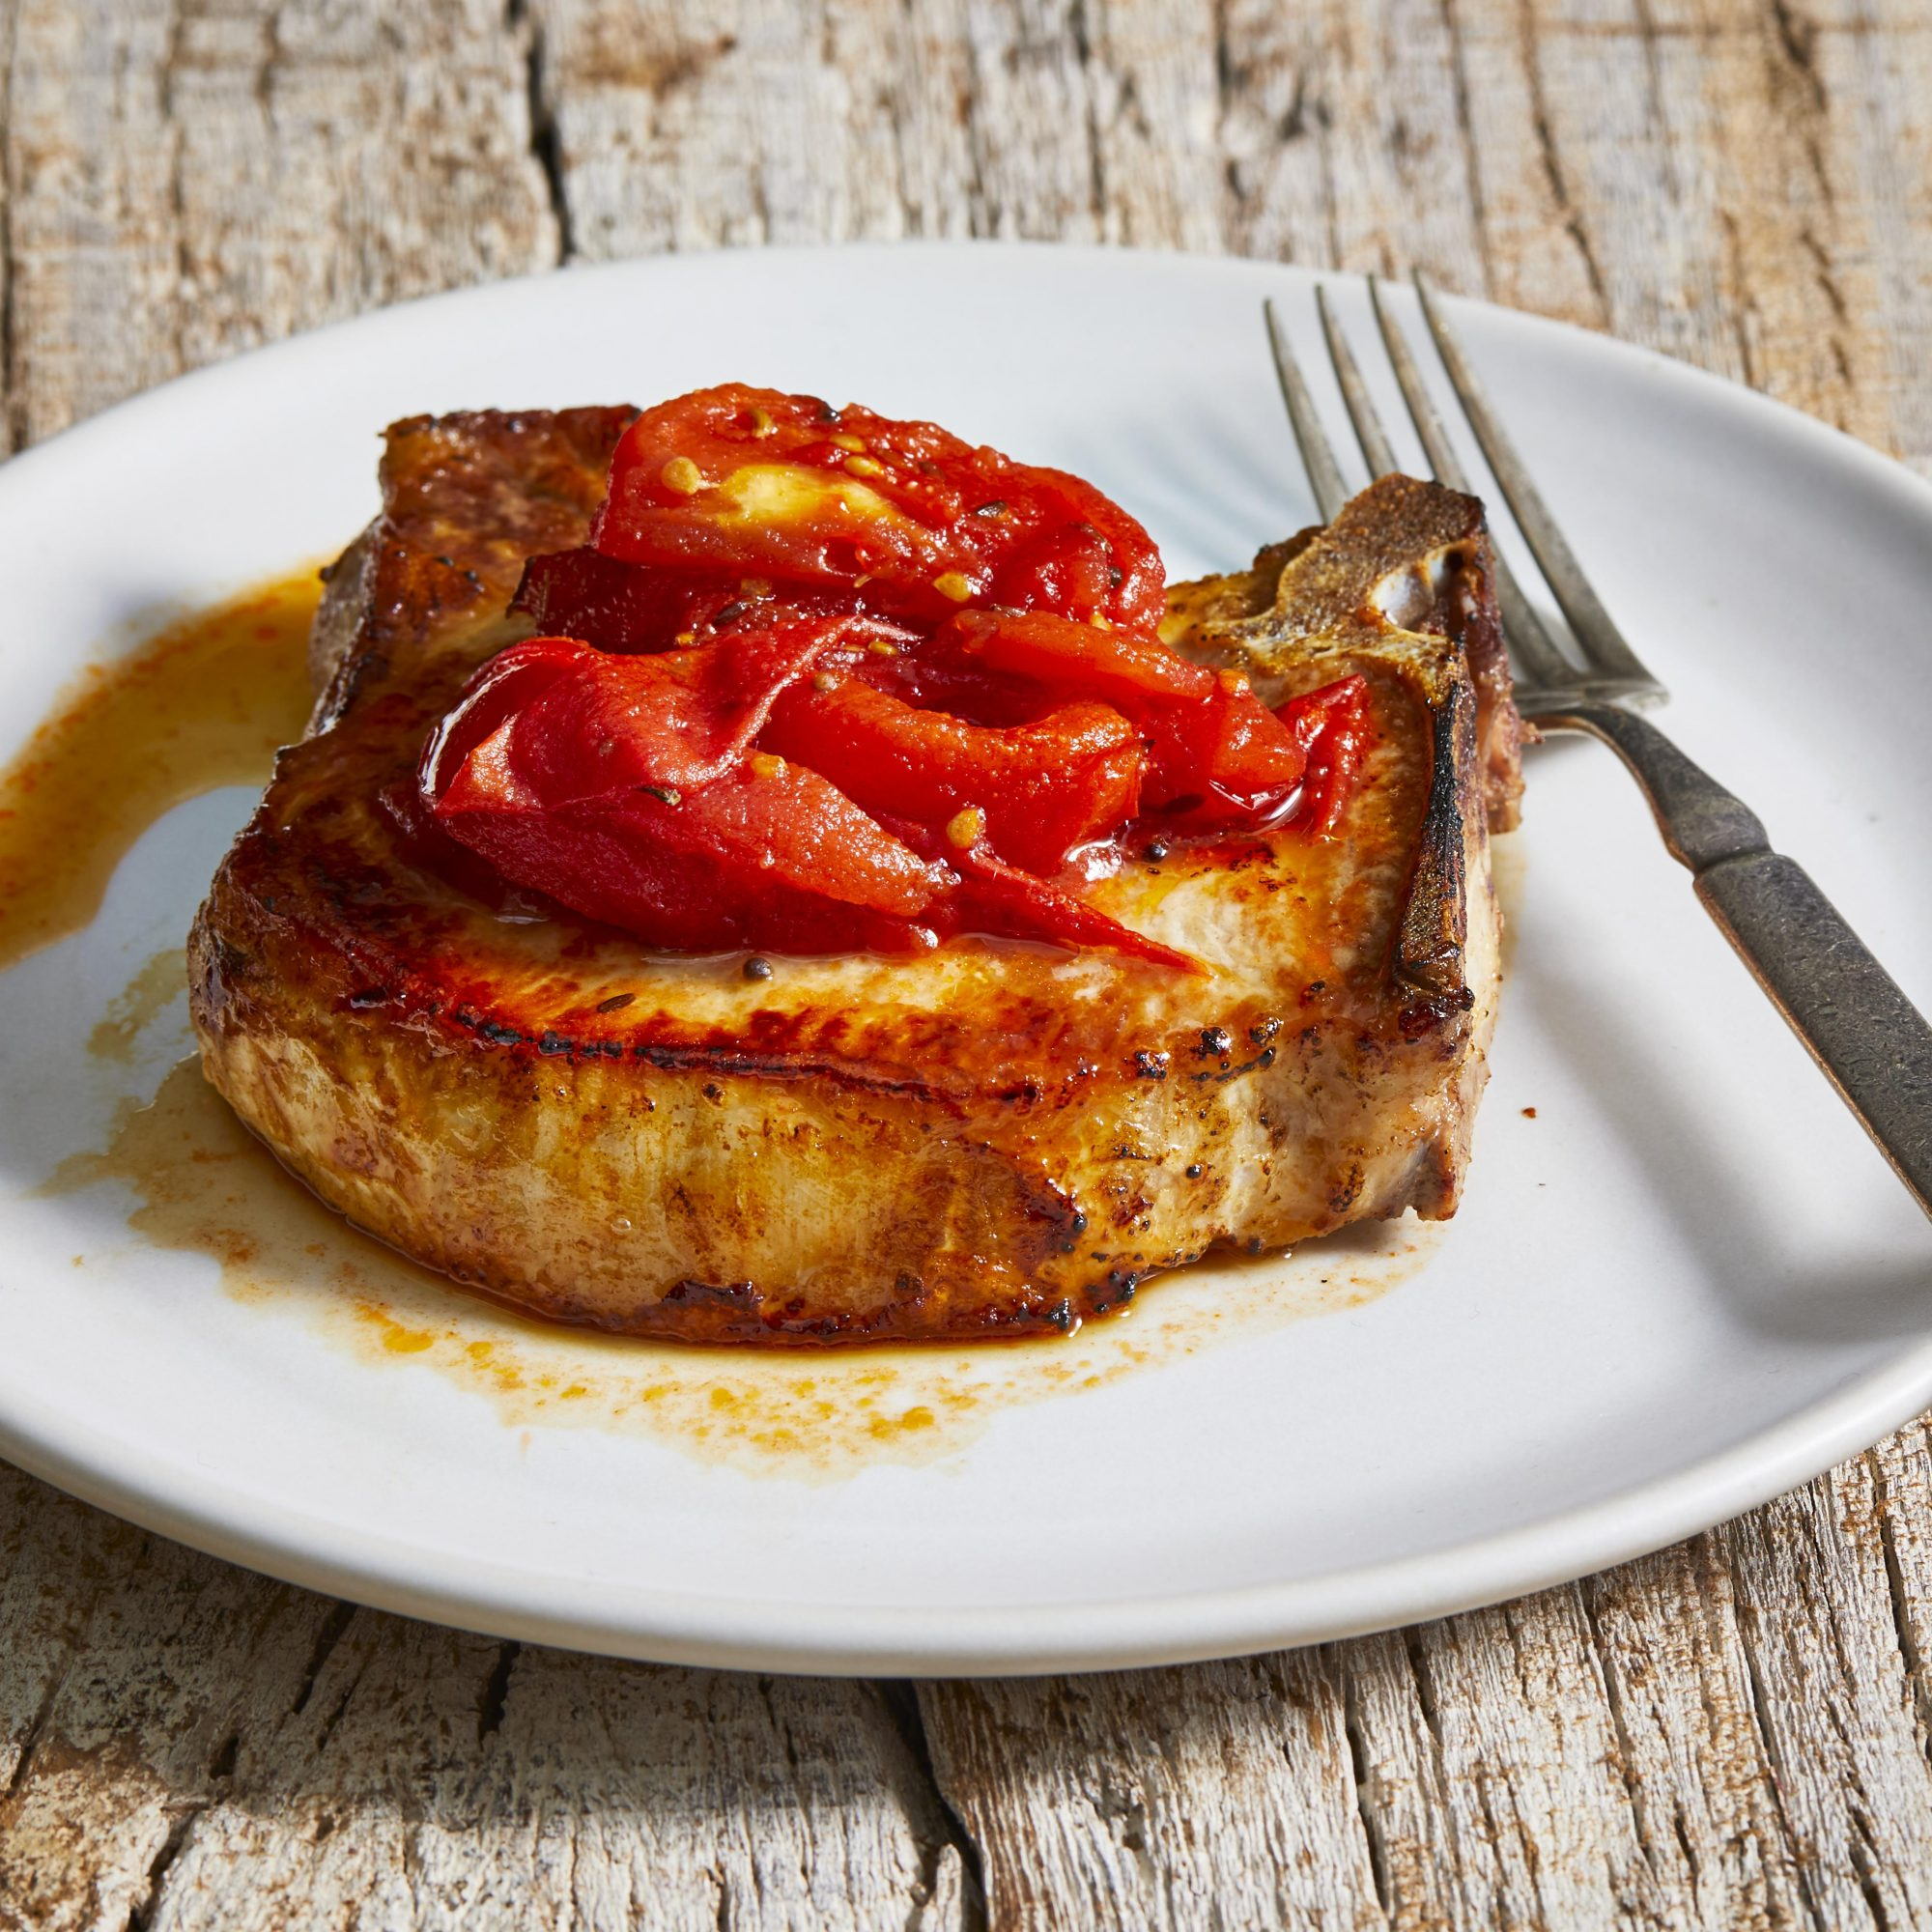 White plate with a pork chop covered in tomato chutney.